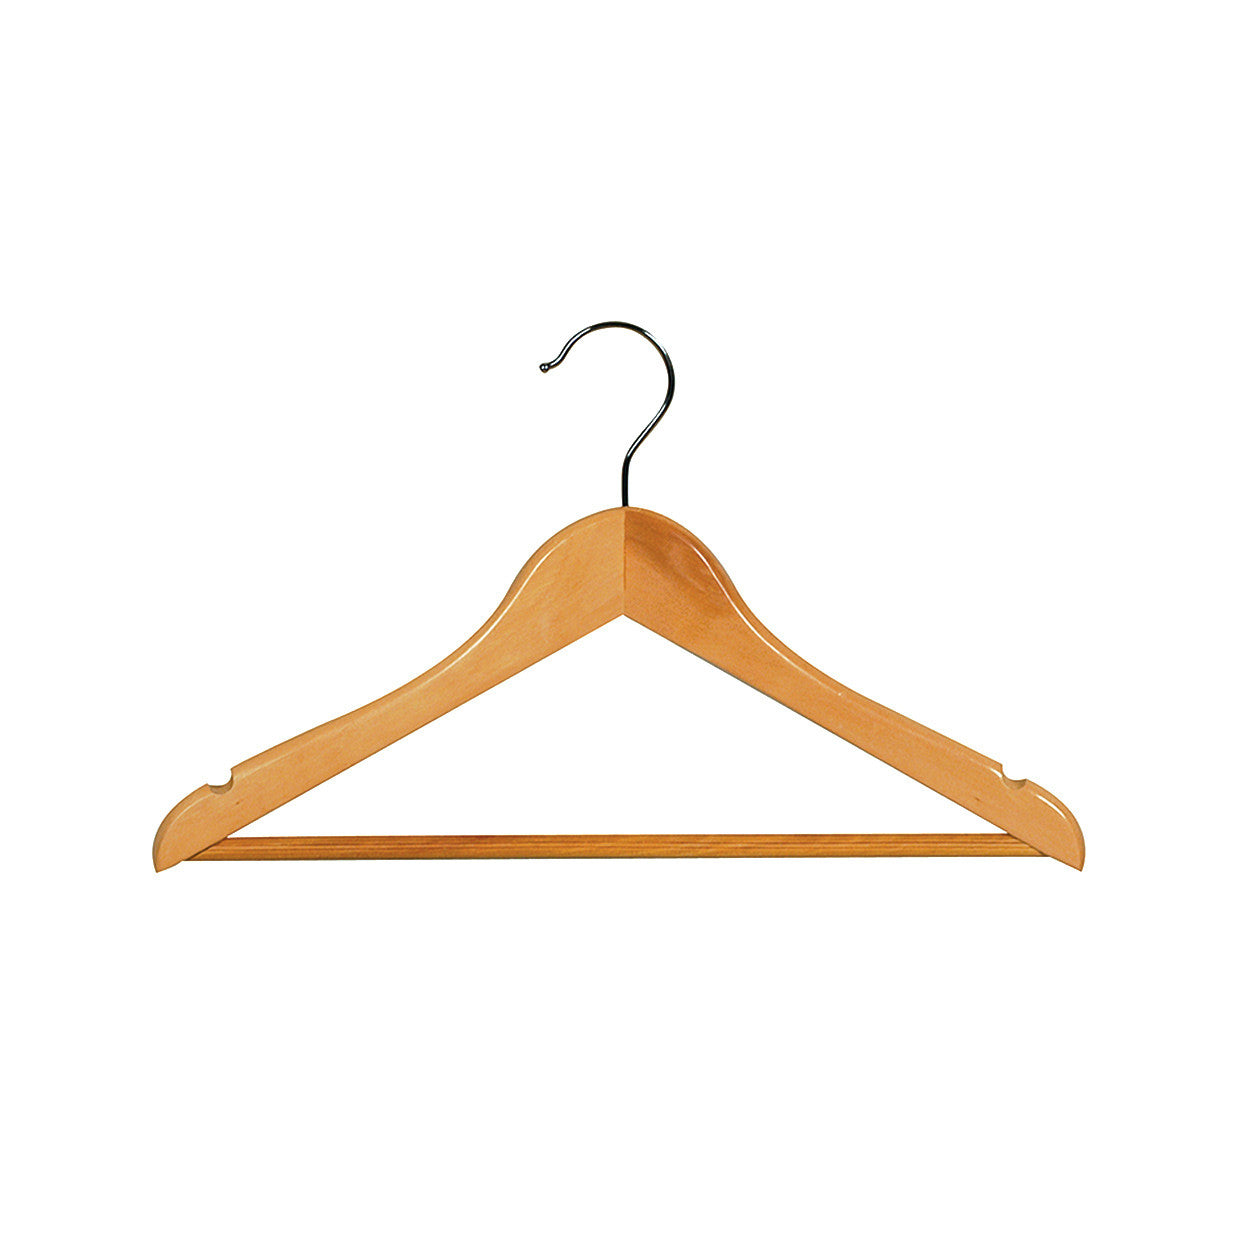 Beech Kids wooden hanger with notches & rail 350 W x 12 mm Thick (Bundle of 10) H2604BH-10